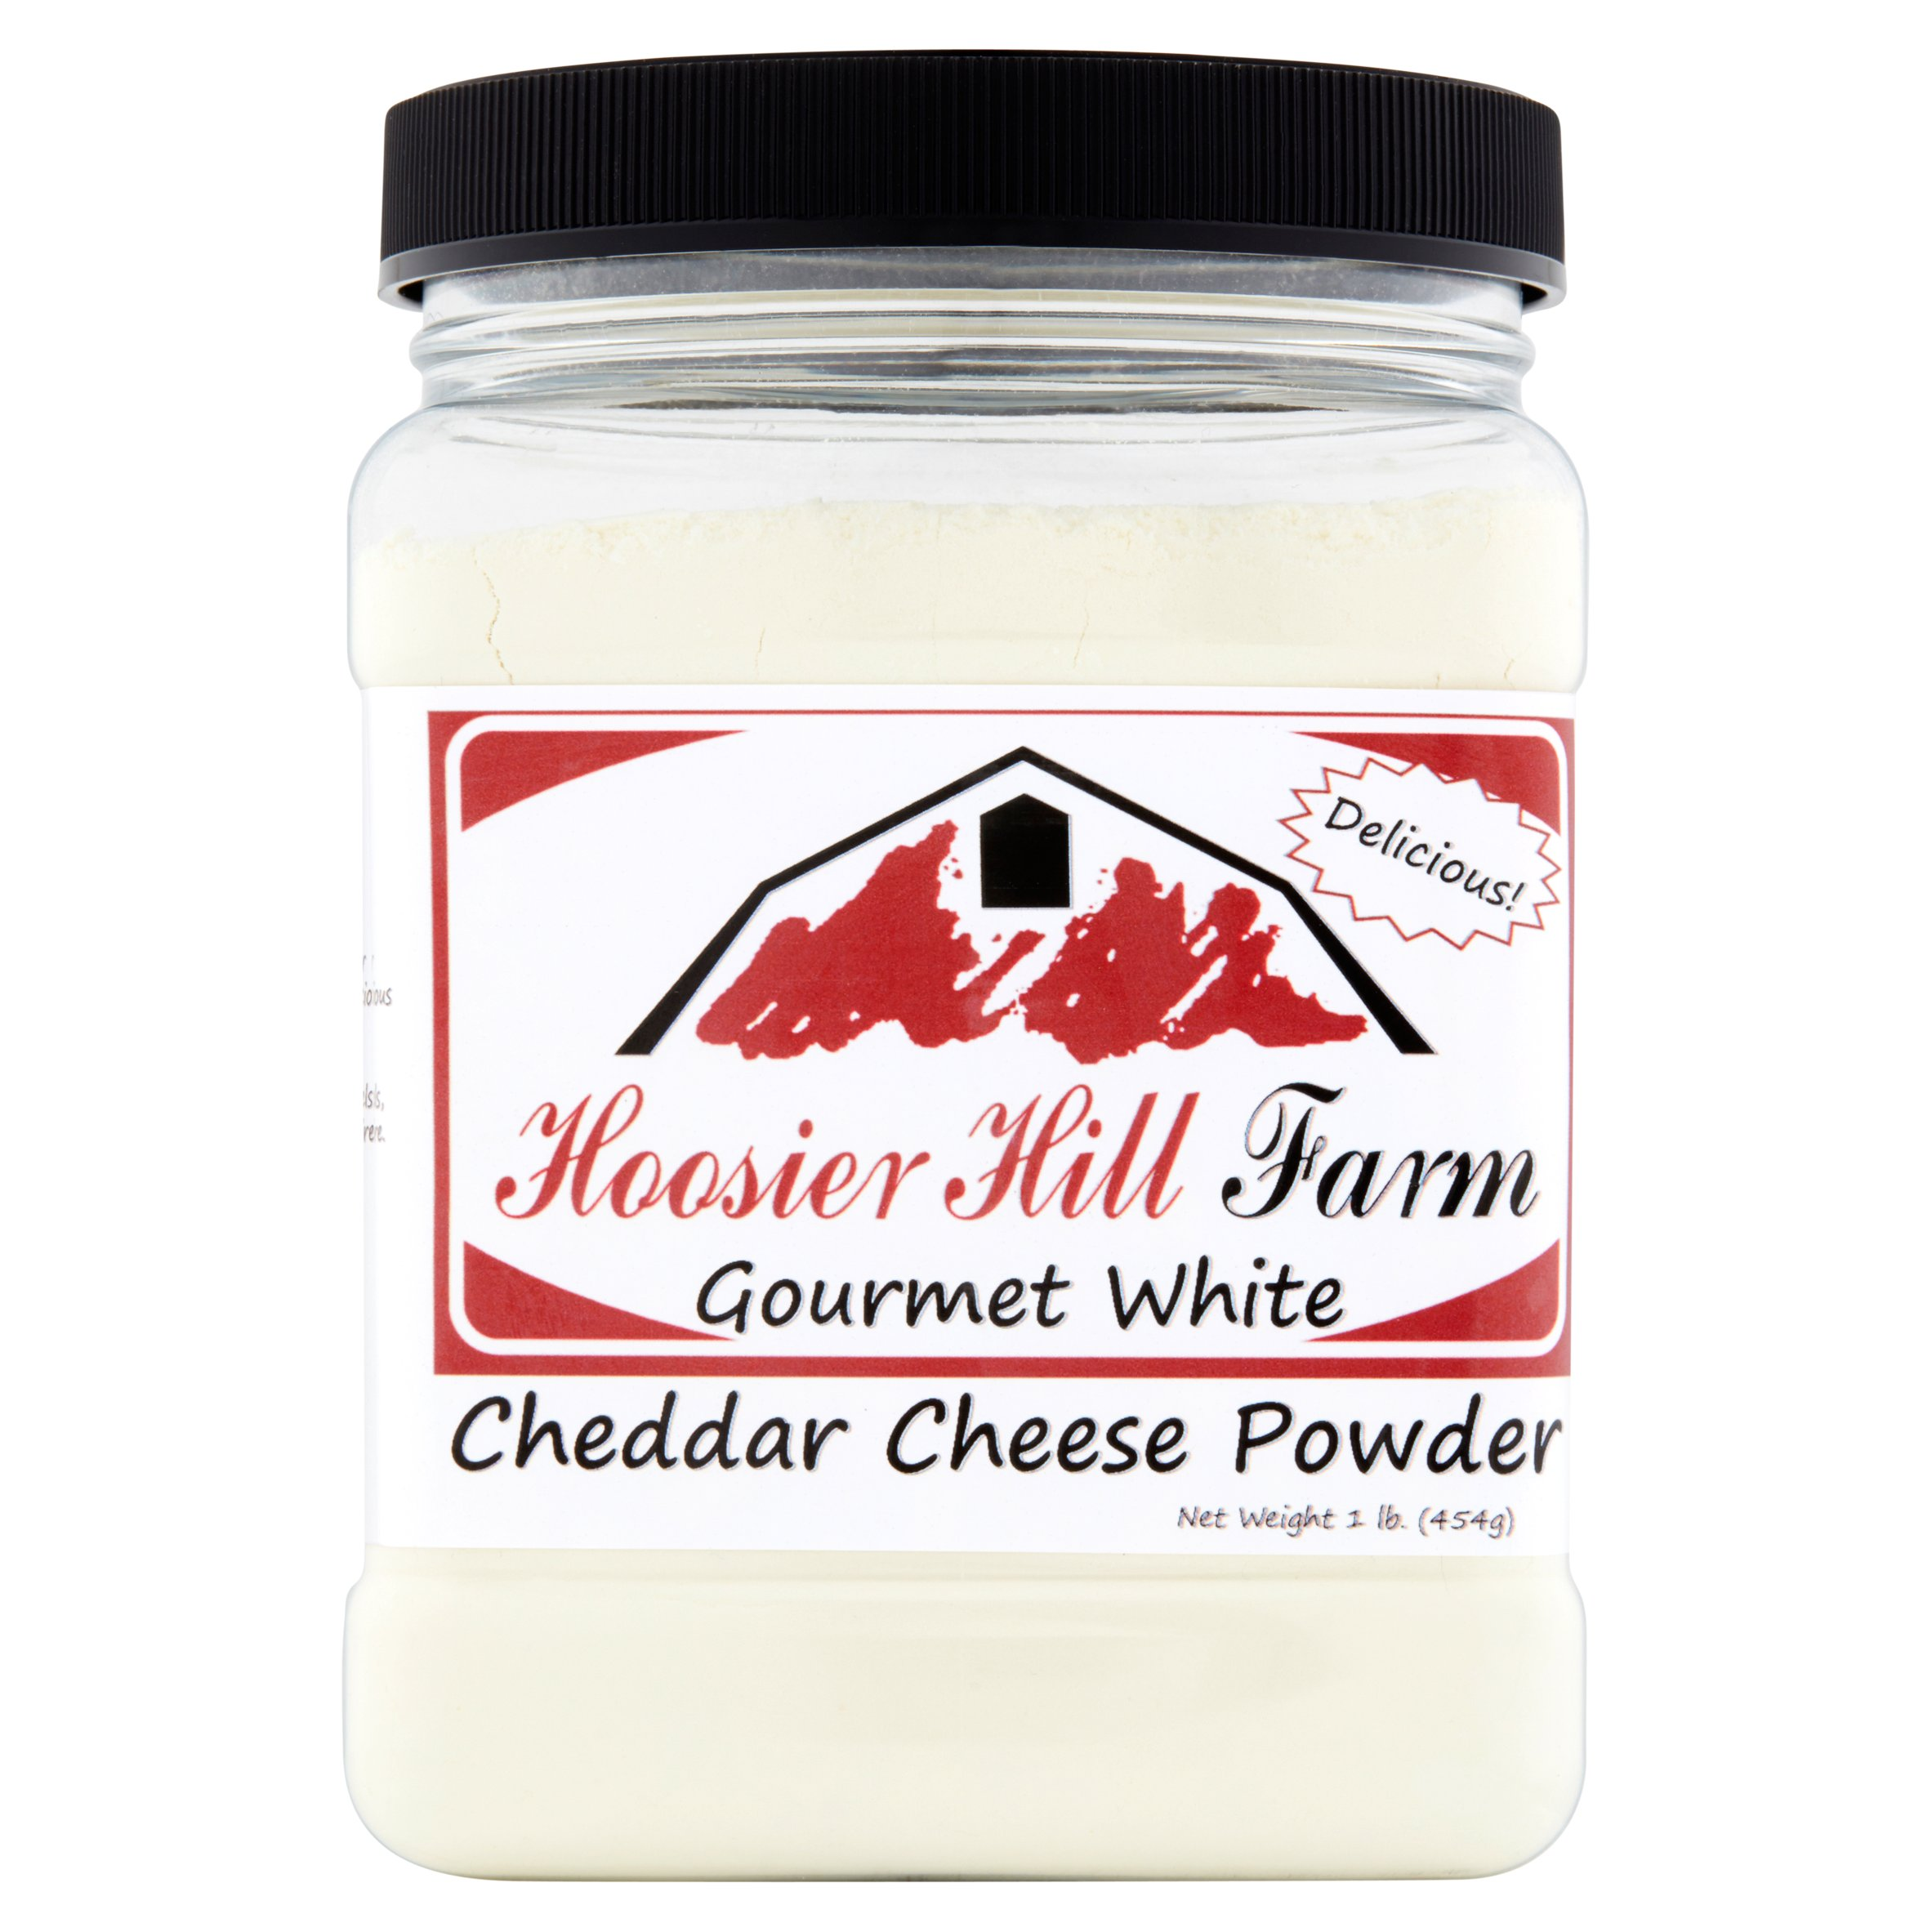 Hoosier Hill Farm Gourmet White Cheddar Cheese Powder, 1 lb by Hoosier Hill Farm